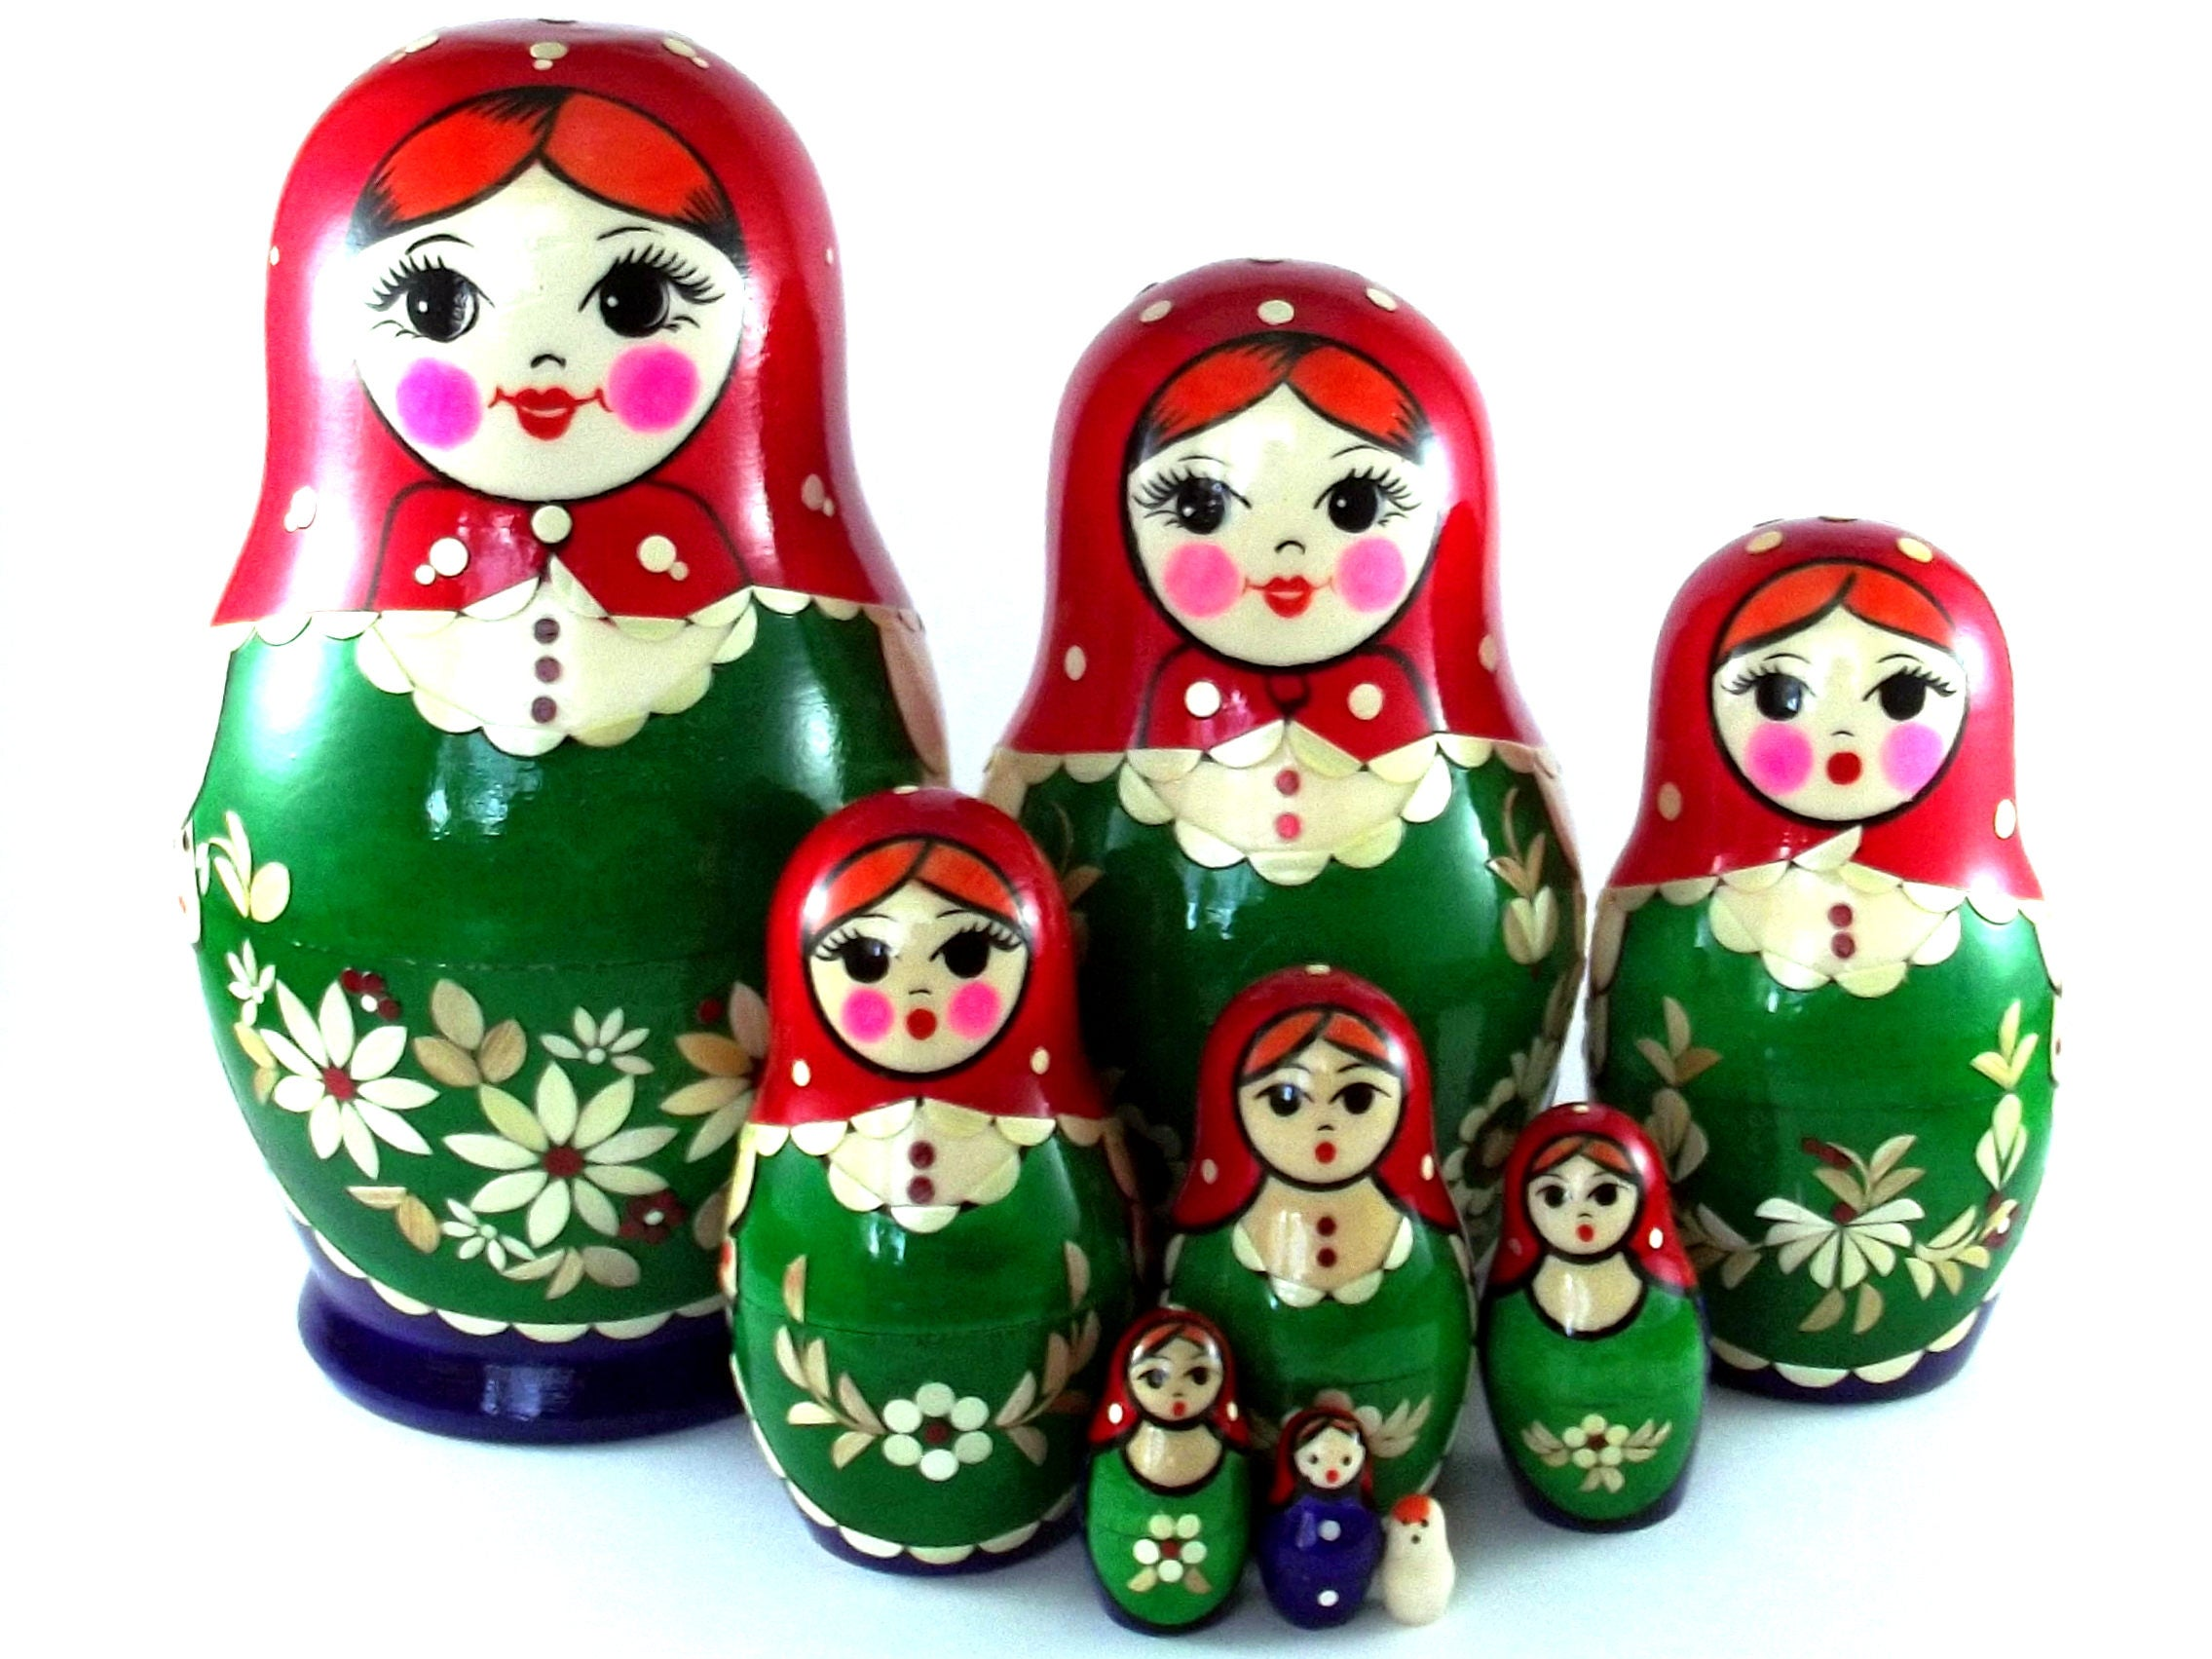 nesting dolls 9 pcs russian matryoshka babushka doll for kids